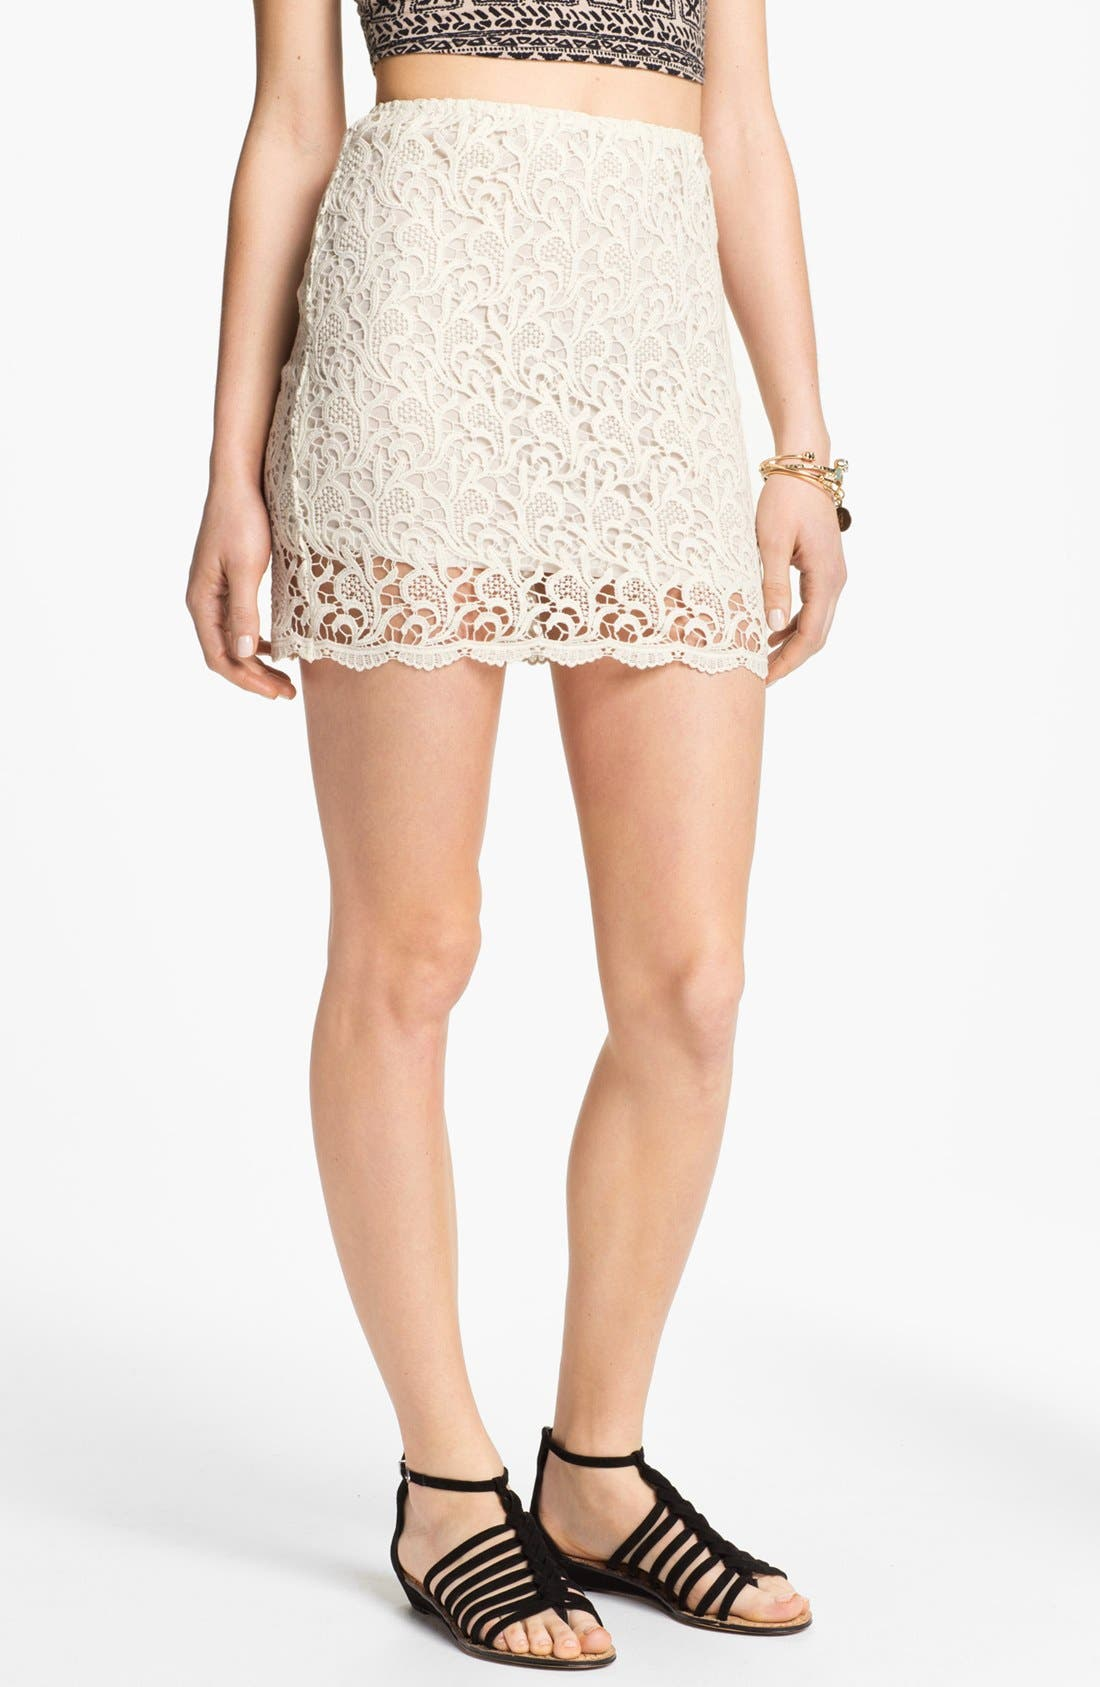 Alternate Image 1 Selected - Blu Pepper Paisley Lace Miniskirt (Juniors)